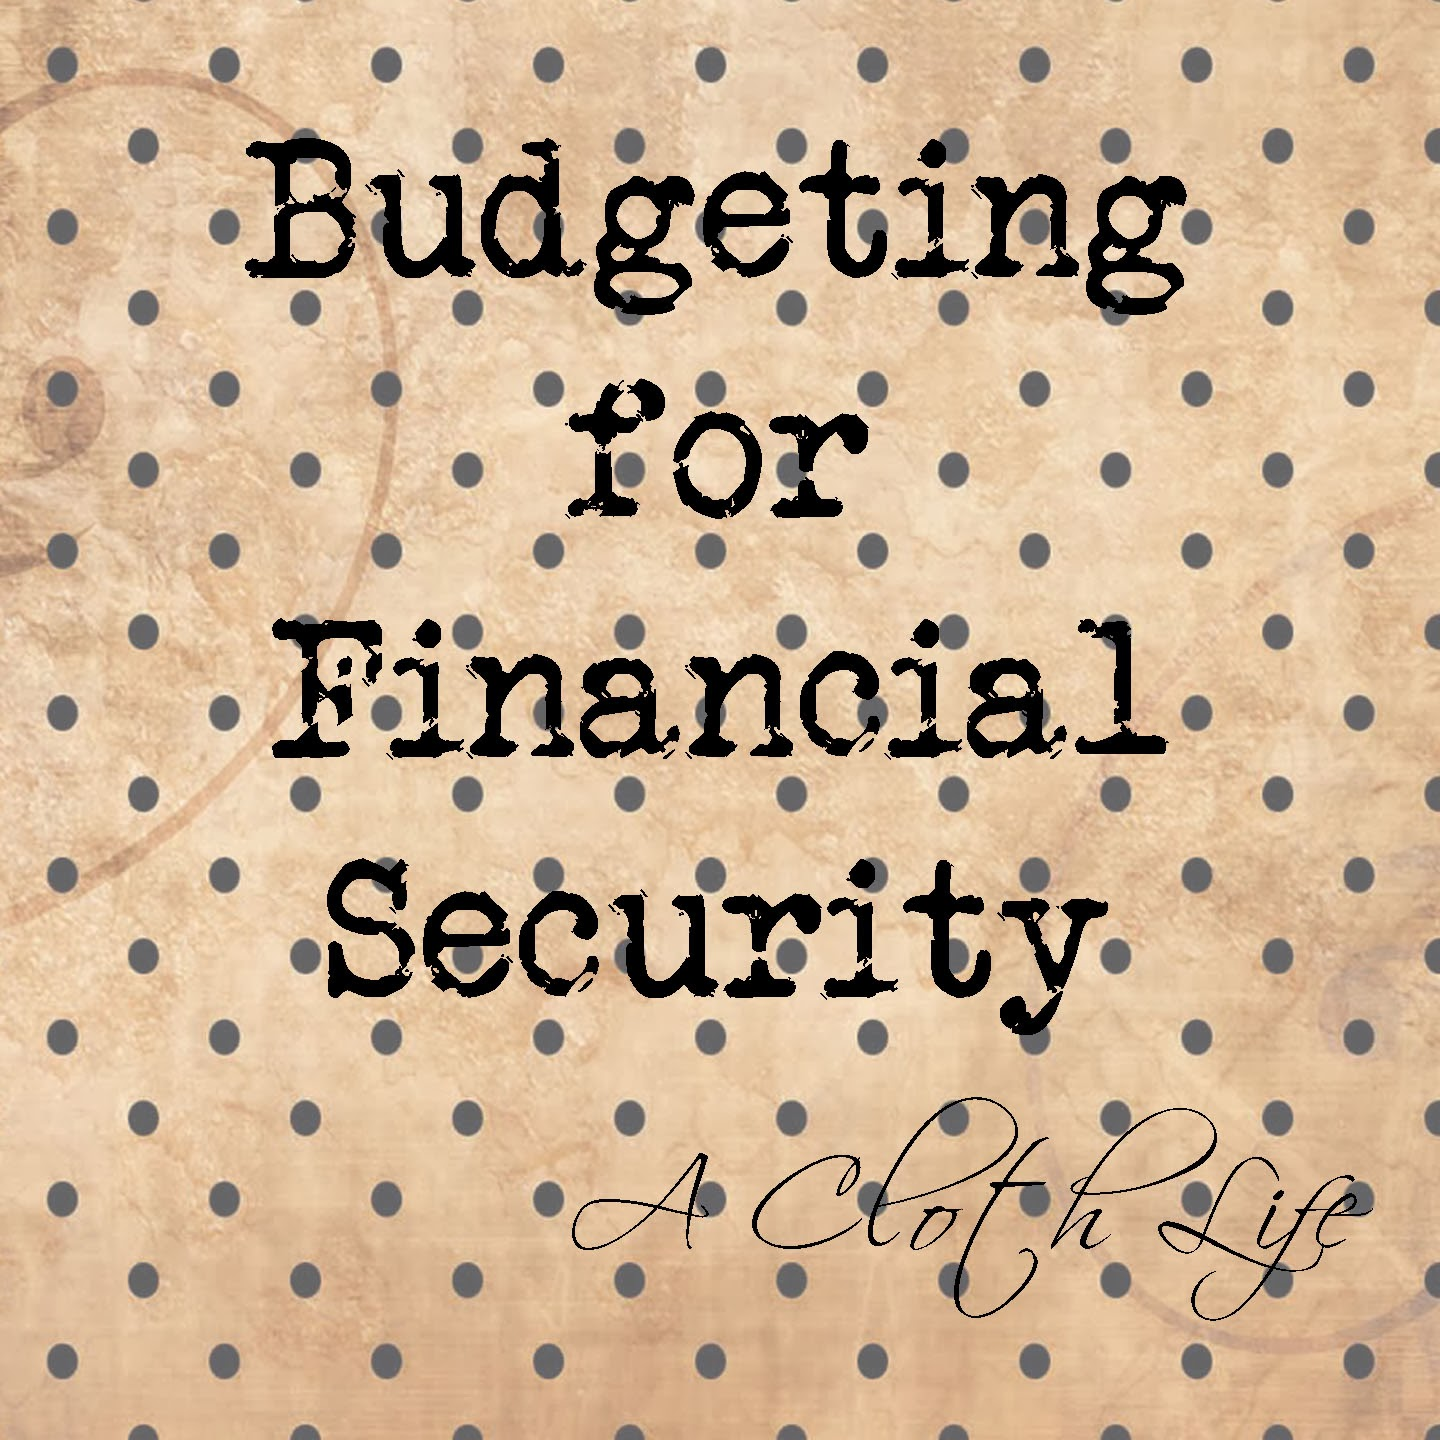 budgeting for financial security